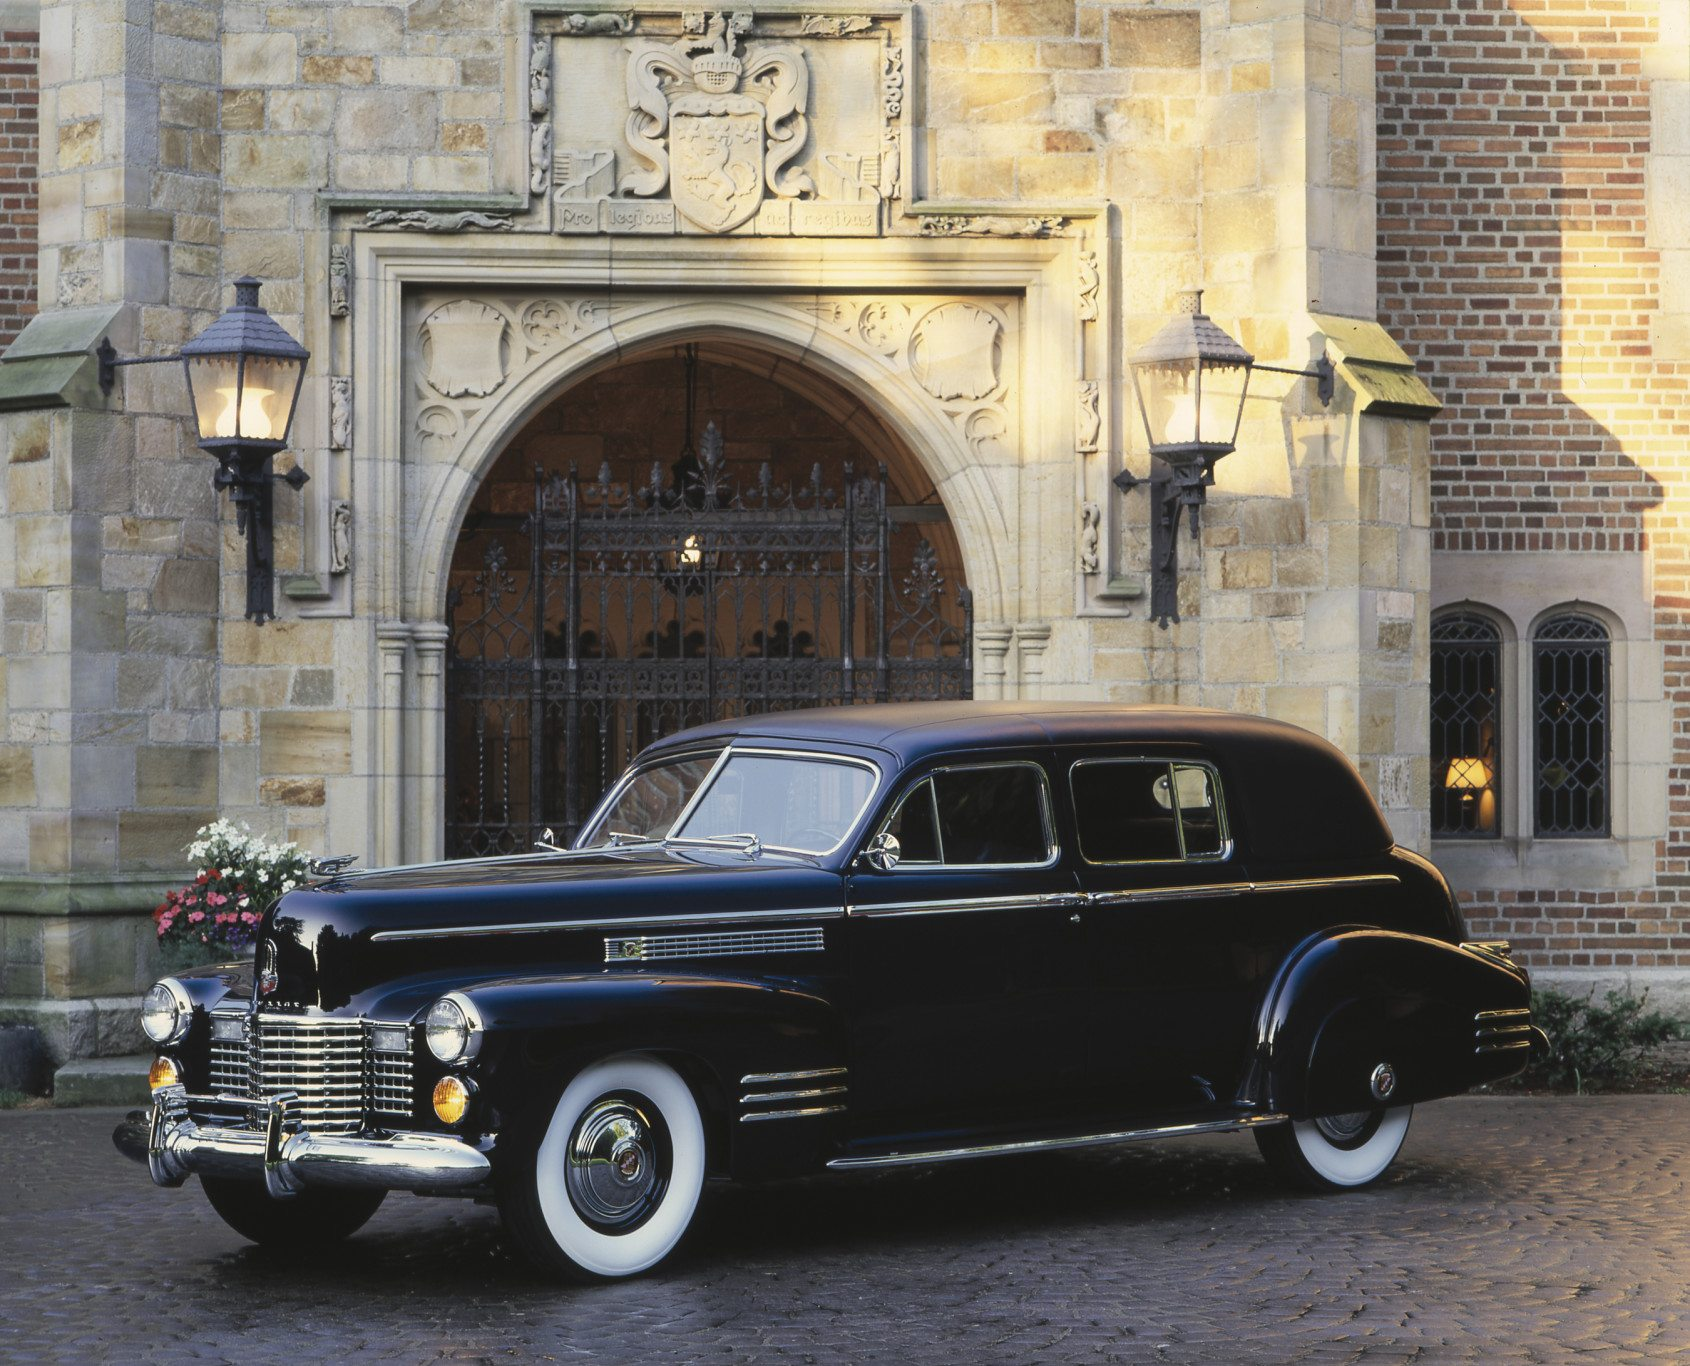 1941 Cadillac Fleetwood Series 75 Limousine model 33F